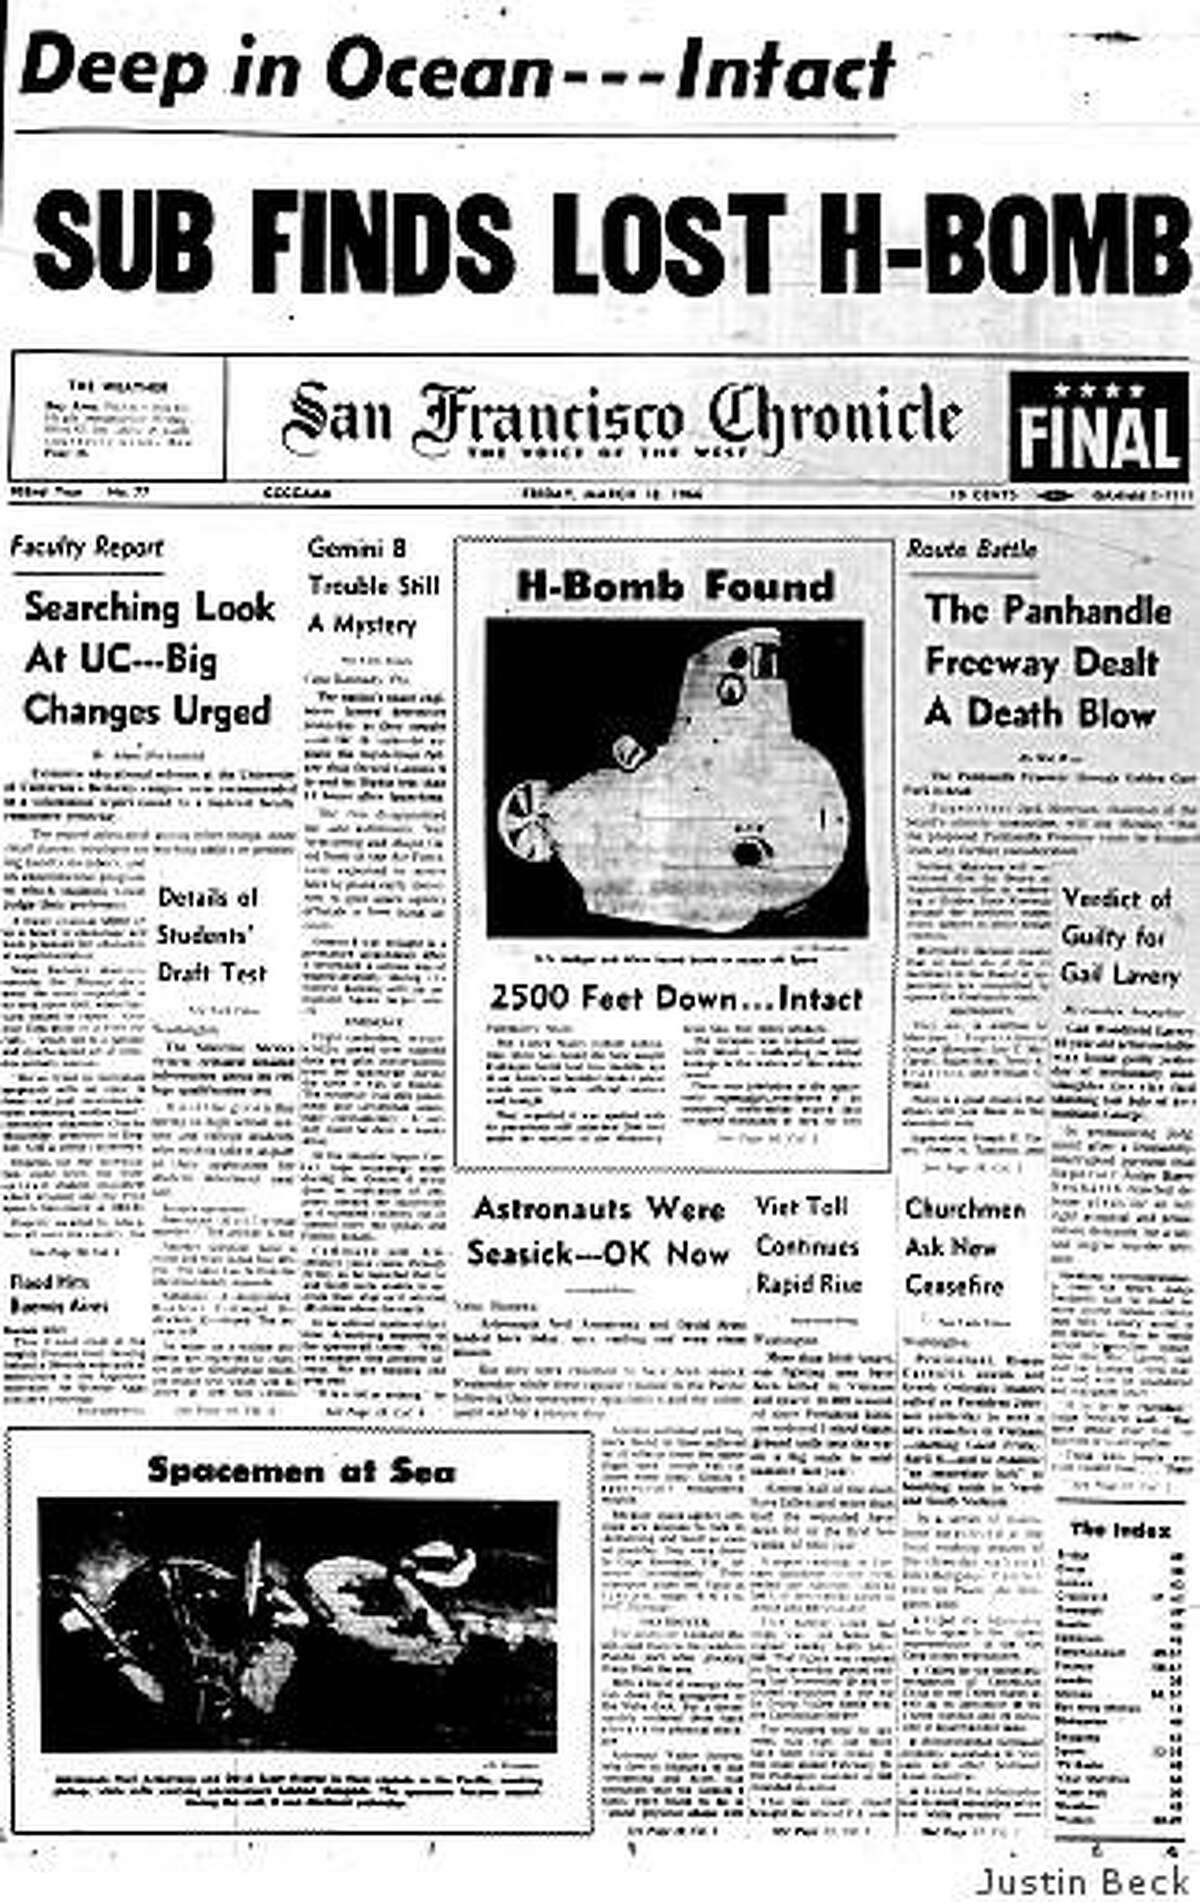 March 18, 1966 ? A hydrogen bomb that went missing for three months in the Mediterranean Sea is back in the hands of the U.S. military after being found the previous day.The bomb had been lost on Jan. 17 when two U.S. military planes, a KC-135 tanker and a B-52 carrying four thermonuclear bombs collided during mid-air refueling. Three of the four bombs fell to the ground near Palomares, Spain. While none of them detonated with a nuclear explosion, the high-explosive triggers in two of the bombs went off upon impact and contaminated the area with radioactive material. A fourth bomb plunged into the water off Spain?s southeastern coastline.On Jan. 29, the Spanish government announced it would no longer allow U.S. planes carrying nuclear weapons to fly over its territory. The search for the missing bomb takes 80 days. On March 17 the U.S. Navy, using a midget submarine called the Alvin (pictured on The Chronicle?s front page the next day), finds the bomb 2,500 feet underwater, intact and with its parachute still attached.In other news, plans for a